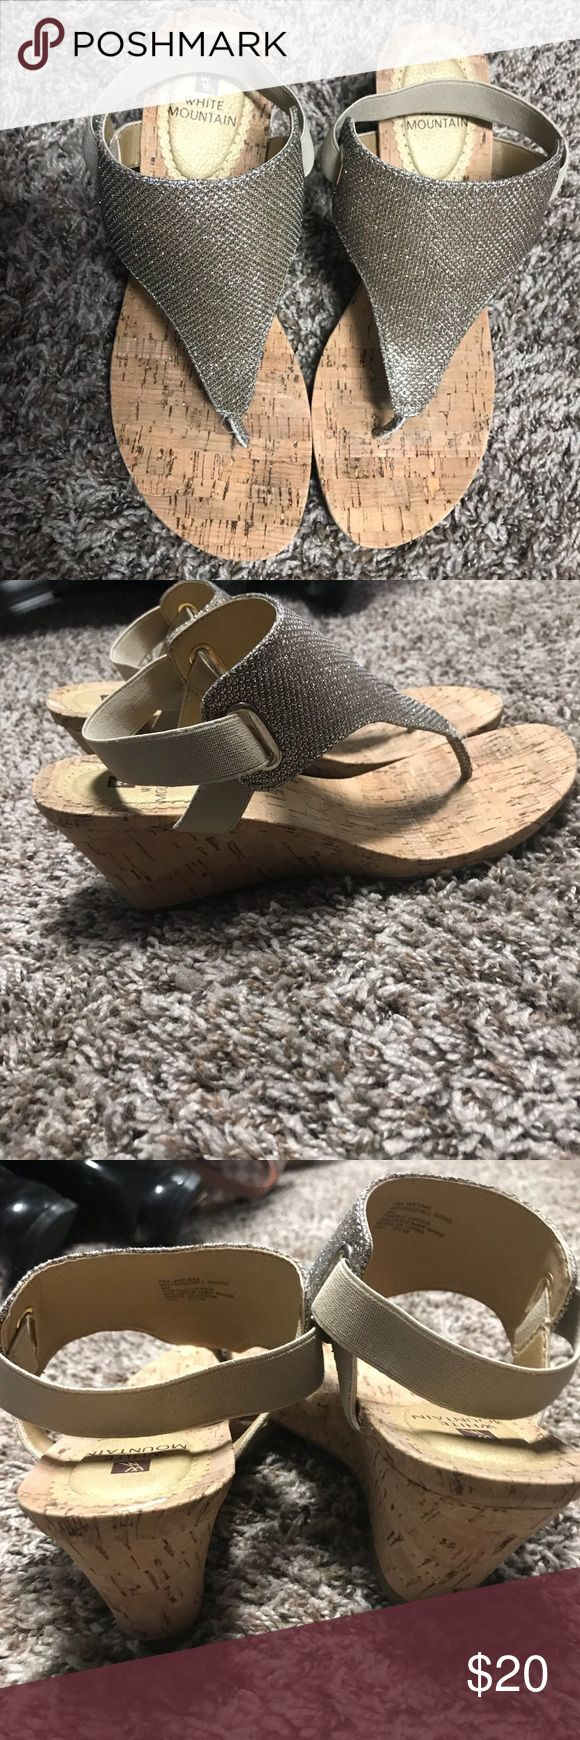 Brand New White Mountain cork glitzy gold shoes Perfect Spring or Summer dressy shoes! Beautiful light shimmery gold color and oh so comfortable cork wedge. Wear these heels all day and feel no pain!! They are a size 9 I love love love them but need a 9.5. Very true to size. White Mountain Shoes Sandals